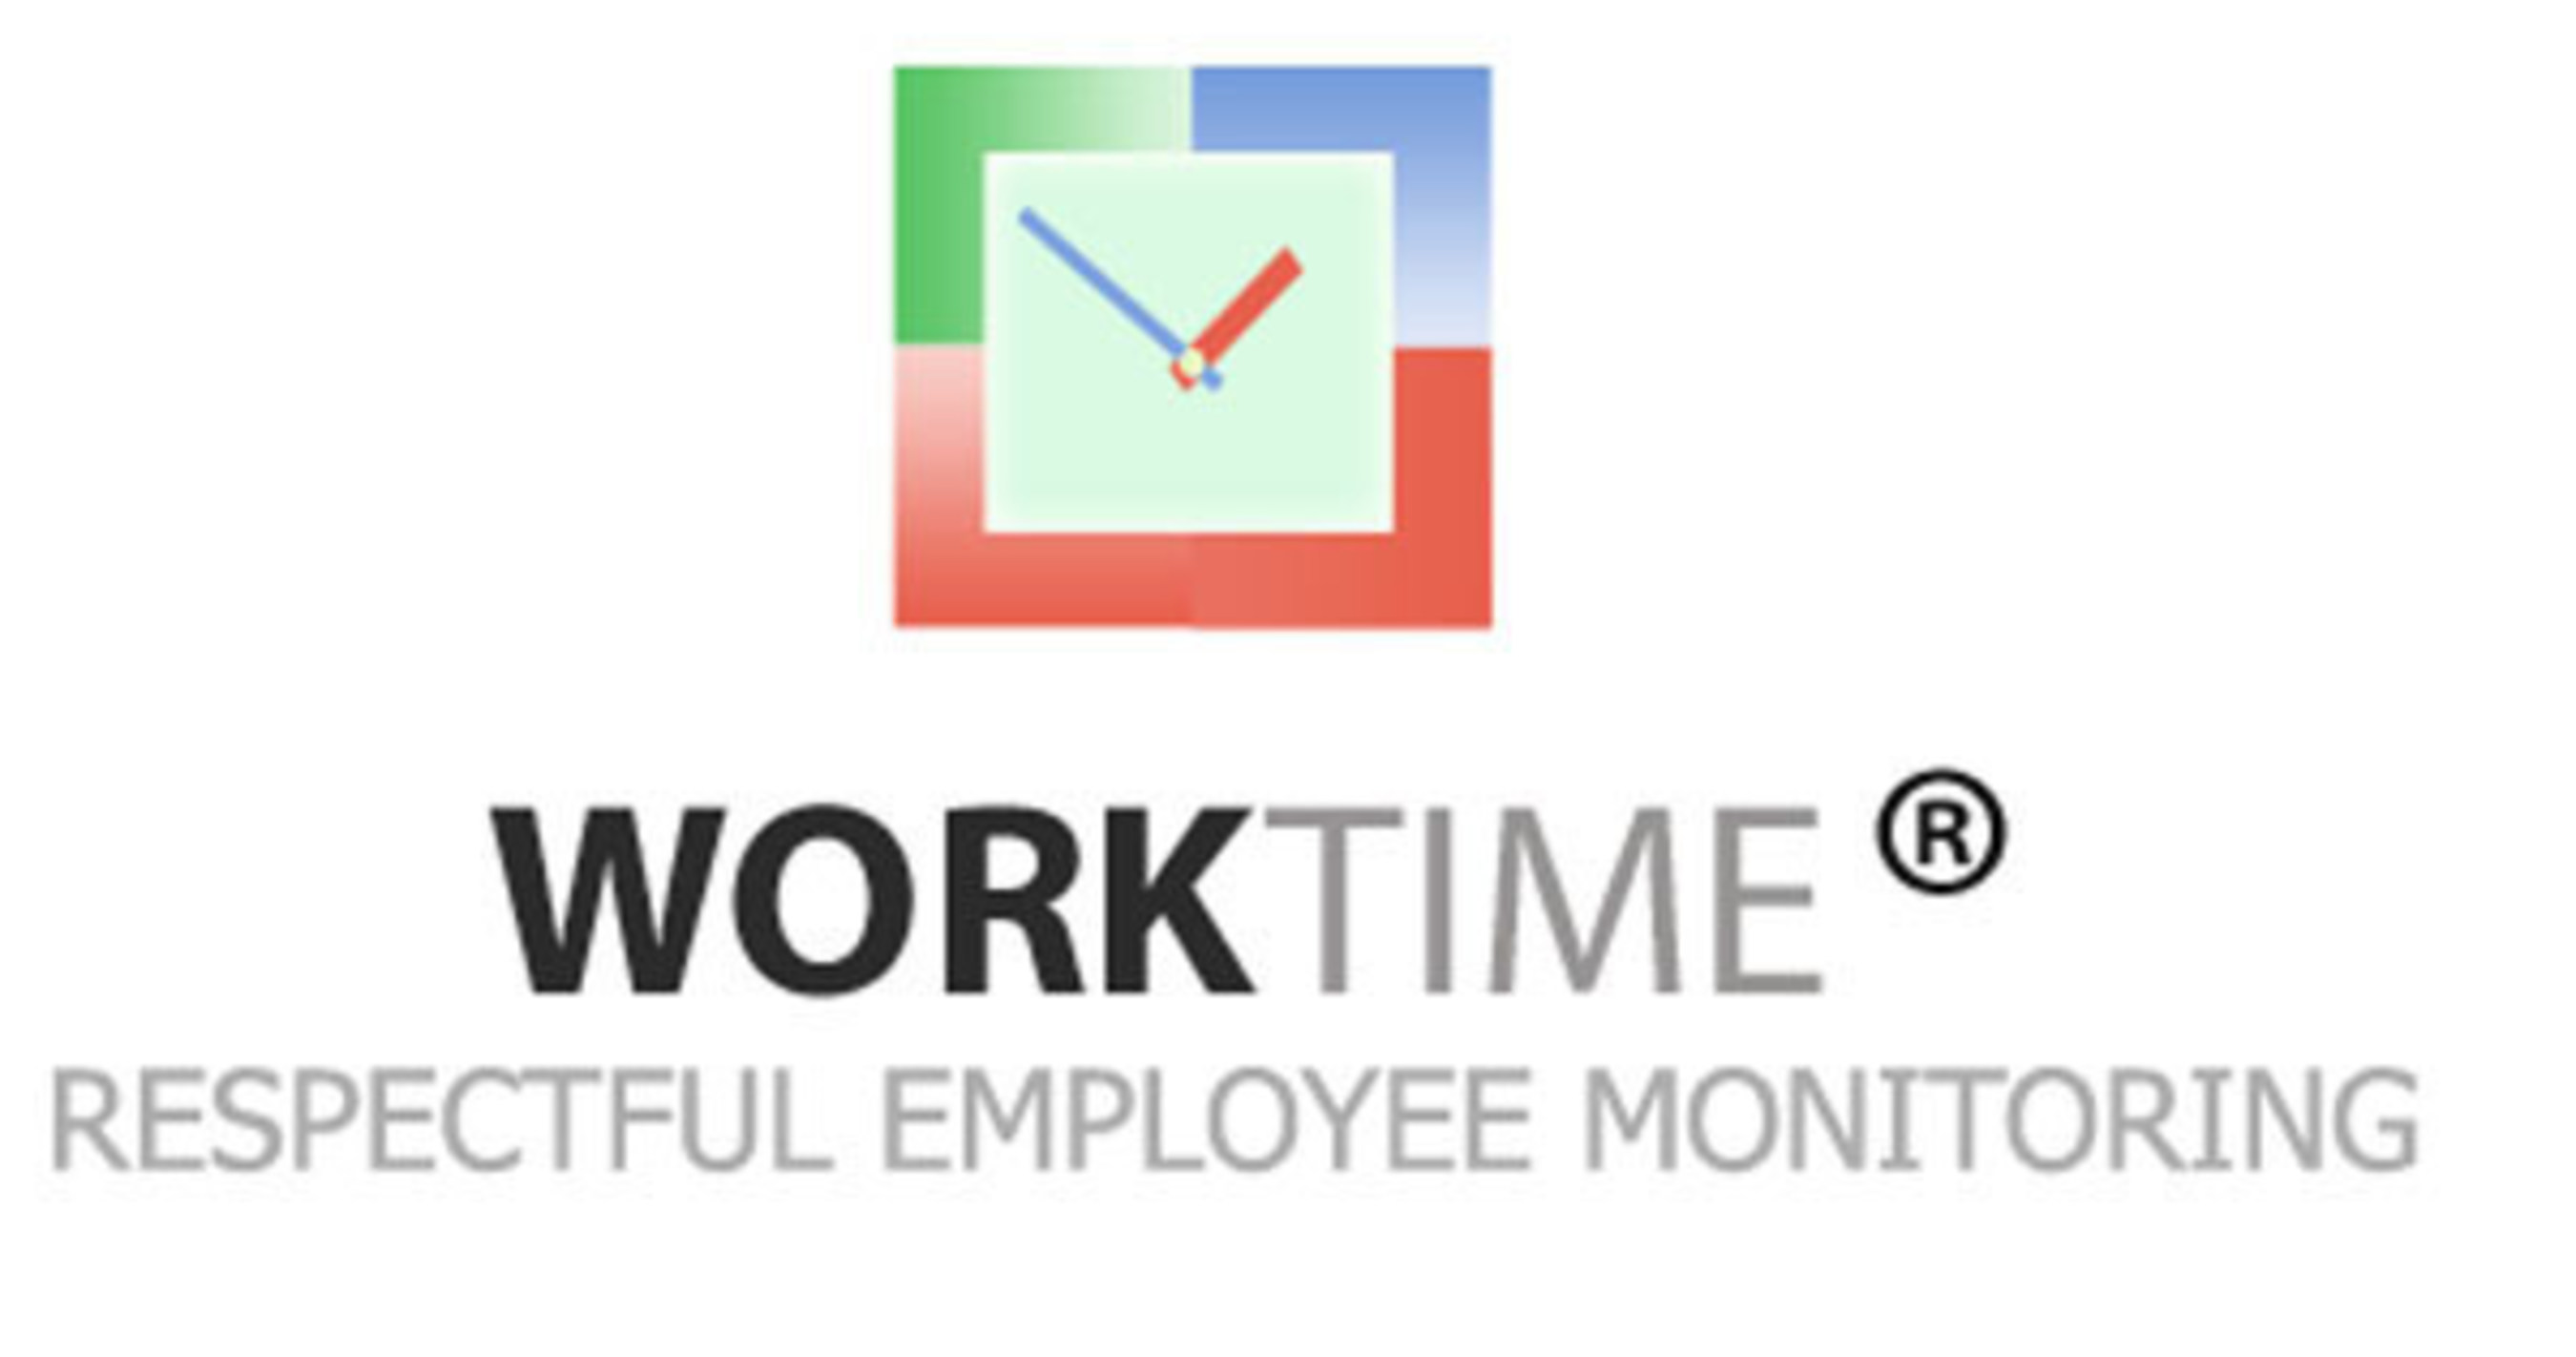 Legal Aspects of Employee Monitoring - Introduced in WorkTime Monitoring Software